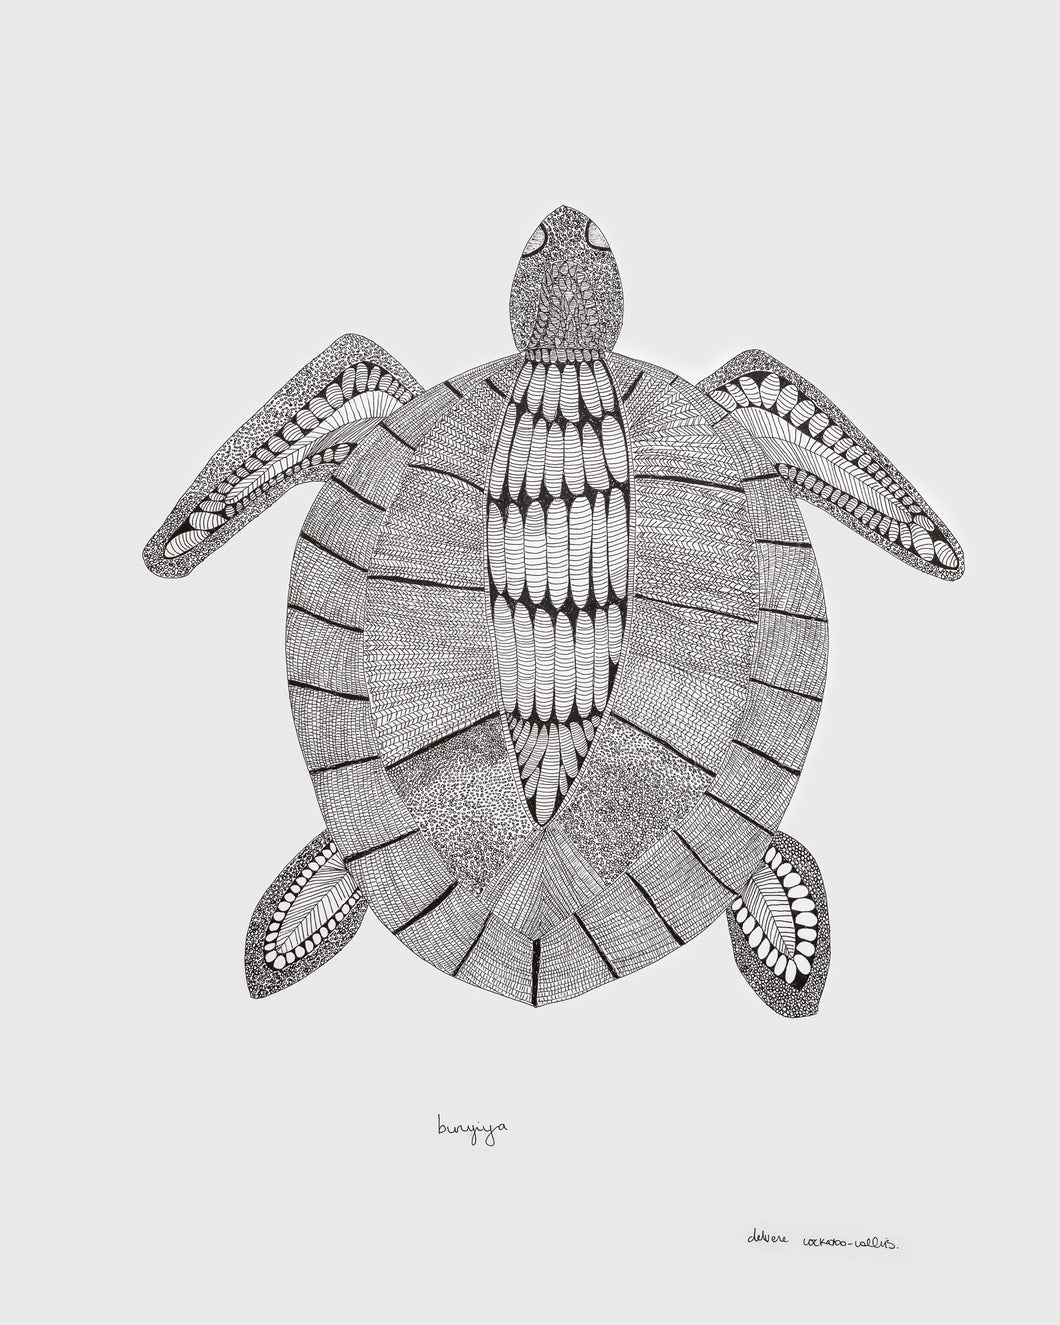 Bunbiya (Turtle) - Original Artwork